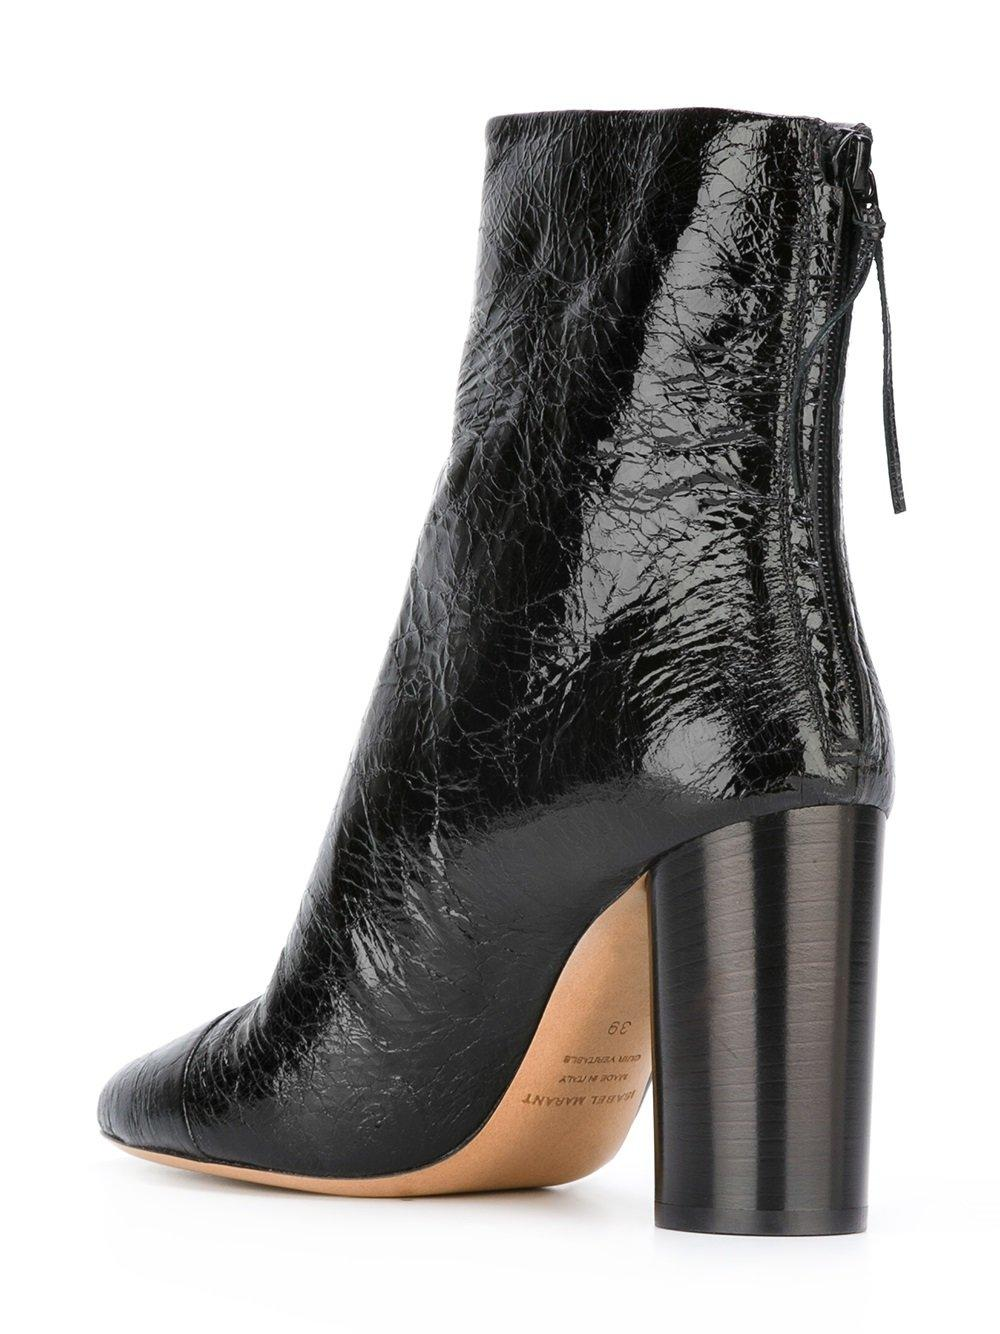 isabel marant grover ankle boots in black lyst. Black Bedroom Furniture Sets. Home Design Ideas